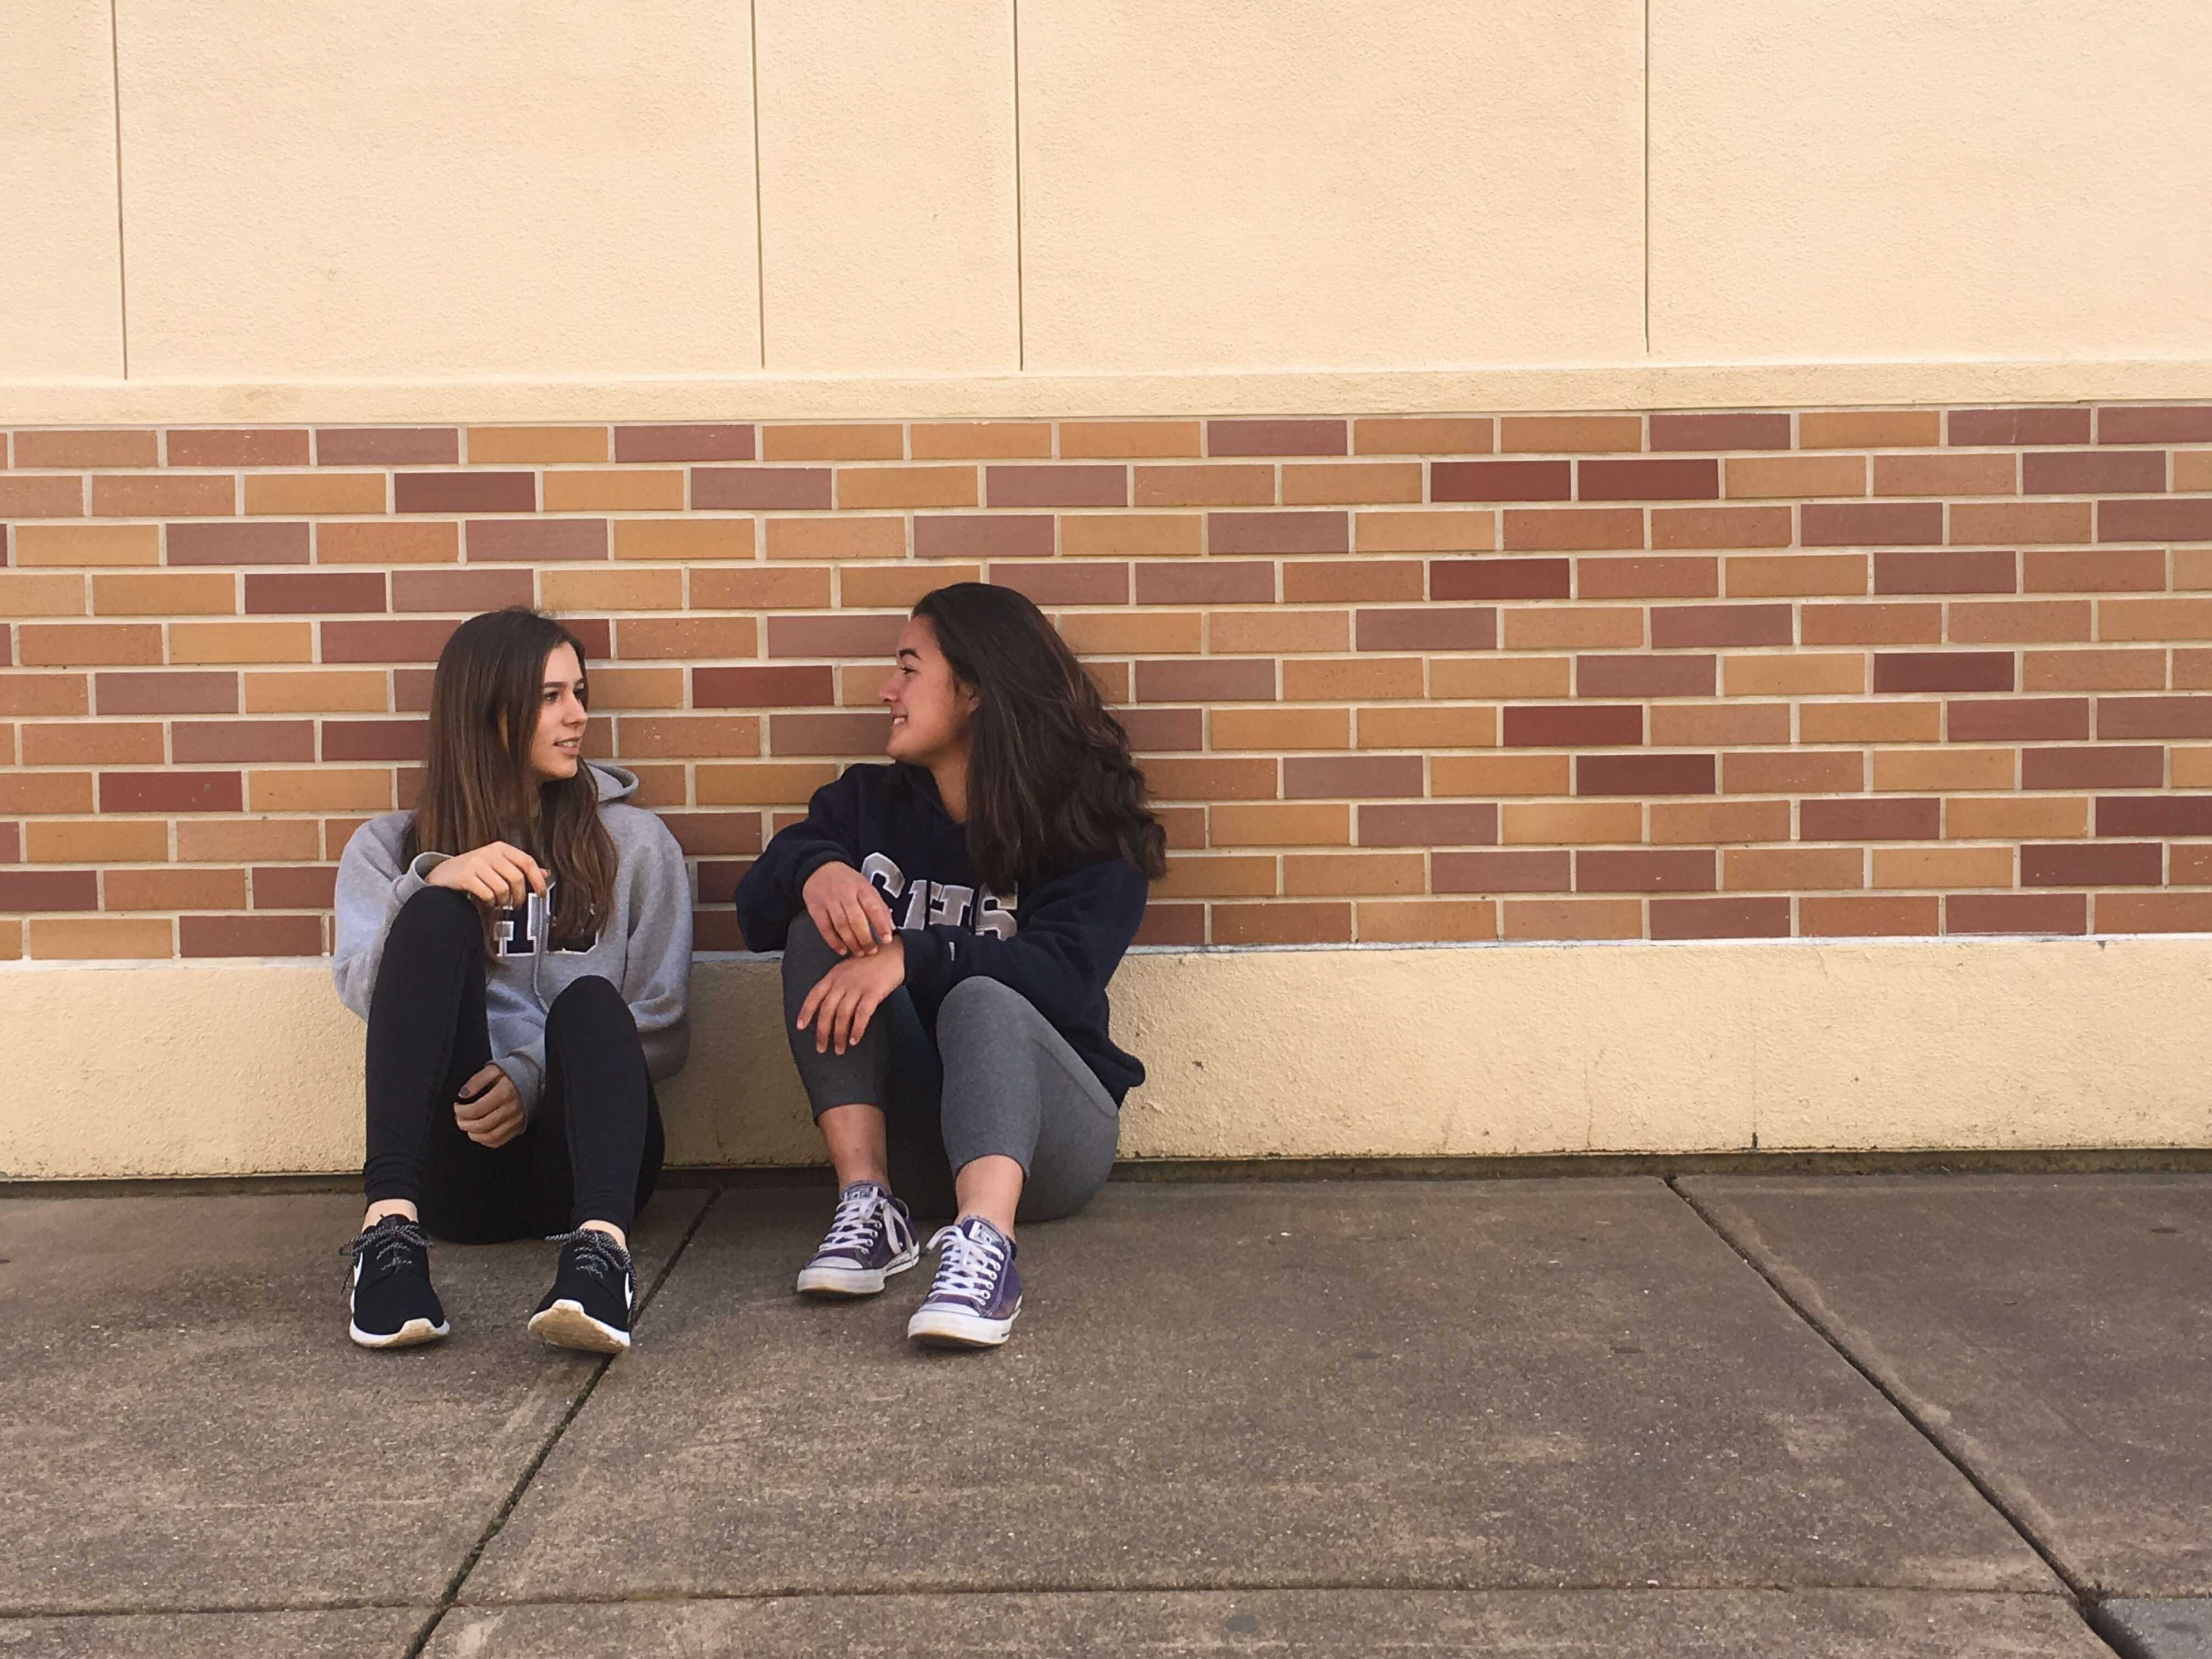 Sophomores Aimee Kanadjian and Sanni Karhiaho wear Carlmont sweathsirts. This is a common way that many students show their school spirit on a daily basis.